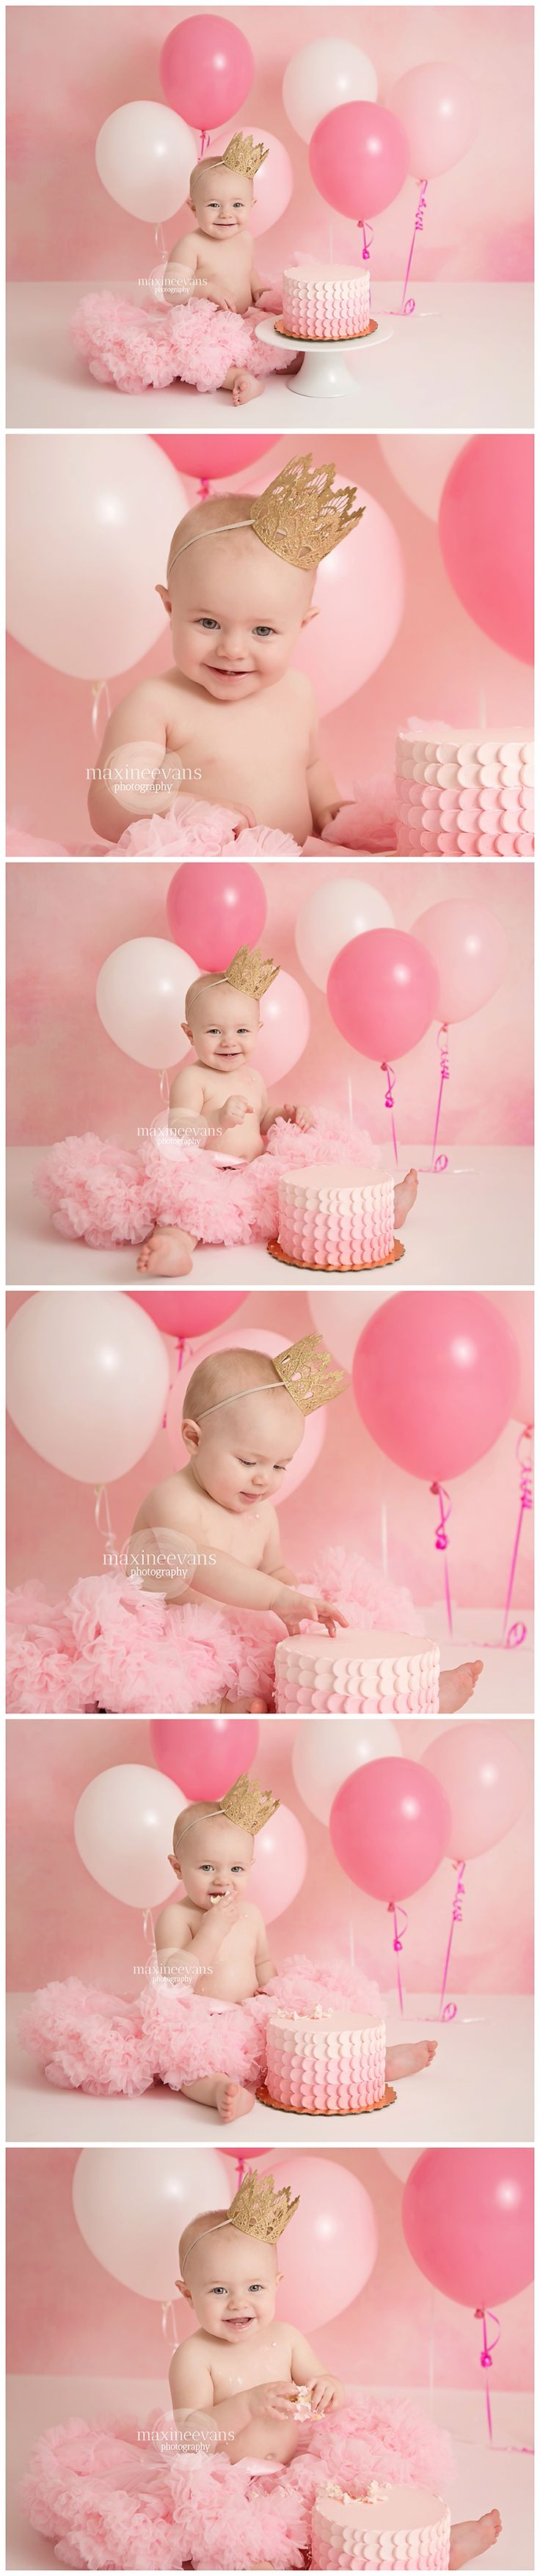 Los Angeles Newborn Photographer - Maxine Evans Photography  Cake Smash - One Year Old Pictures www.maxineevansphotography.com  Los Angeles | Thousand Oaks | Woodland Hills | West LA | Agoura Hills | Studio City #losangelesnewbornbaby #losangelesnewborn #losangelesnewbornphotographer